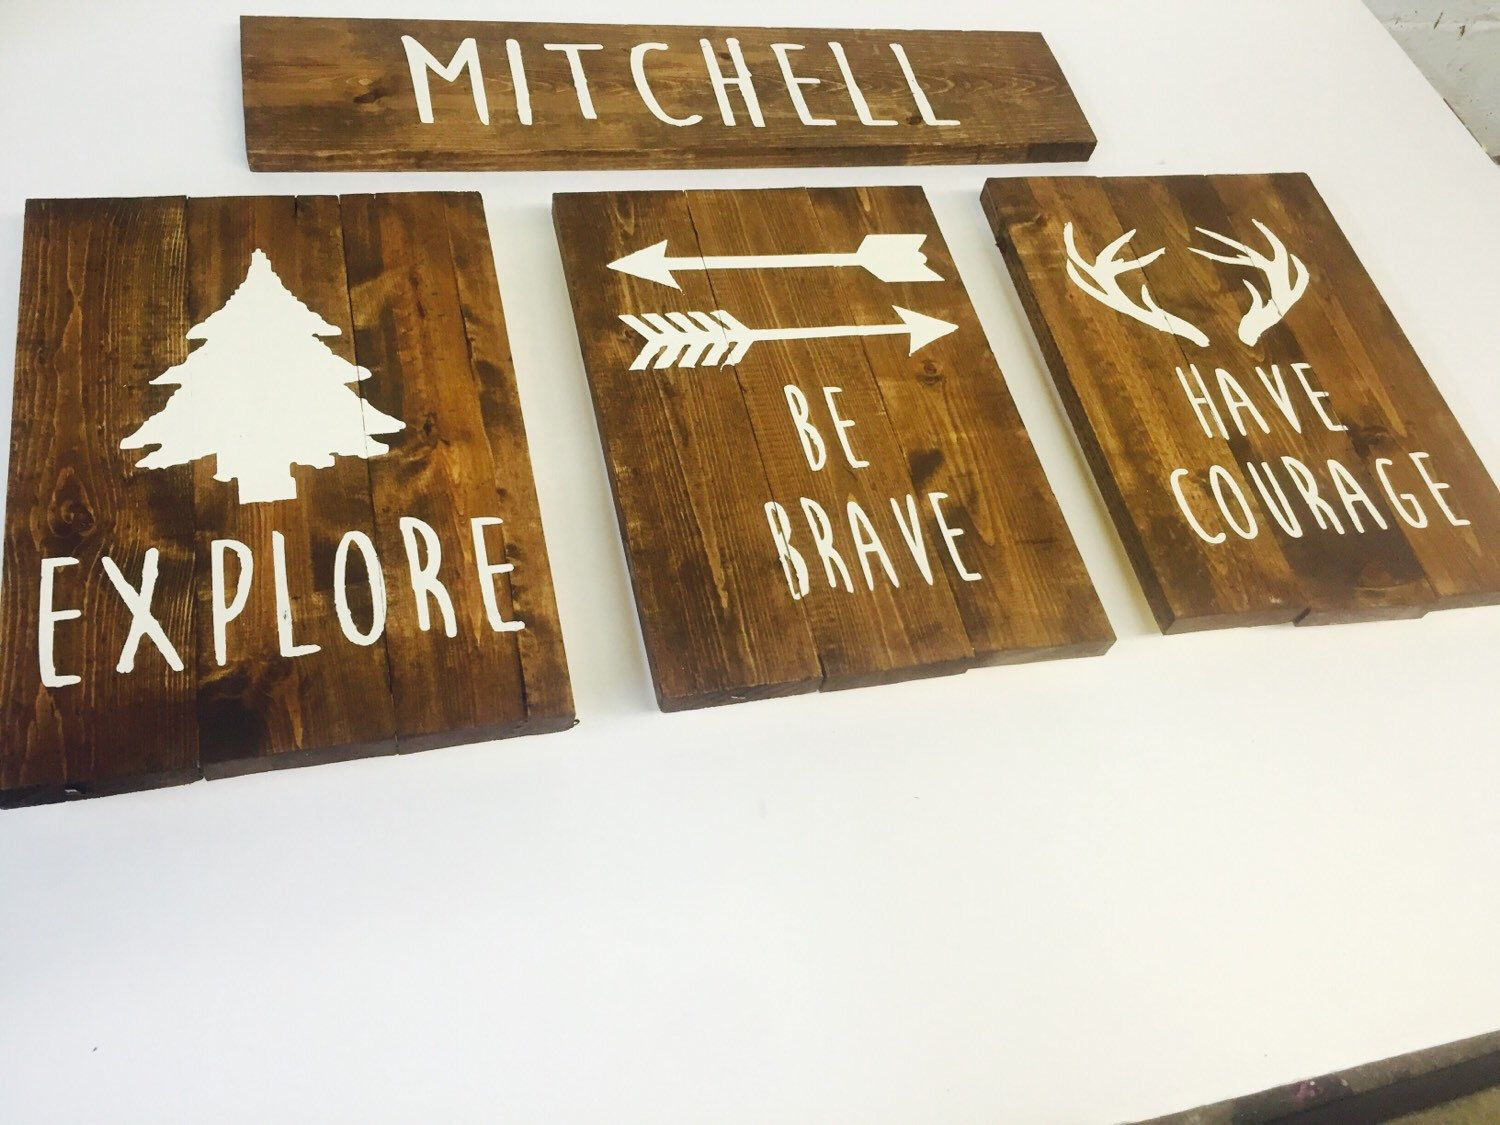 Explore be brave have courage pine tree antlers arrow rustic